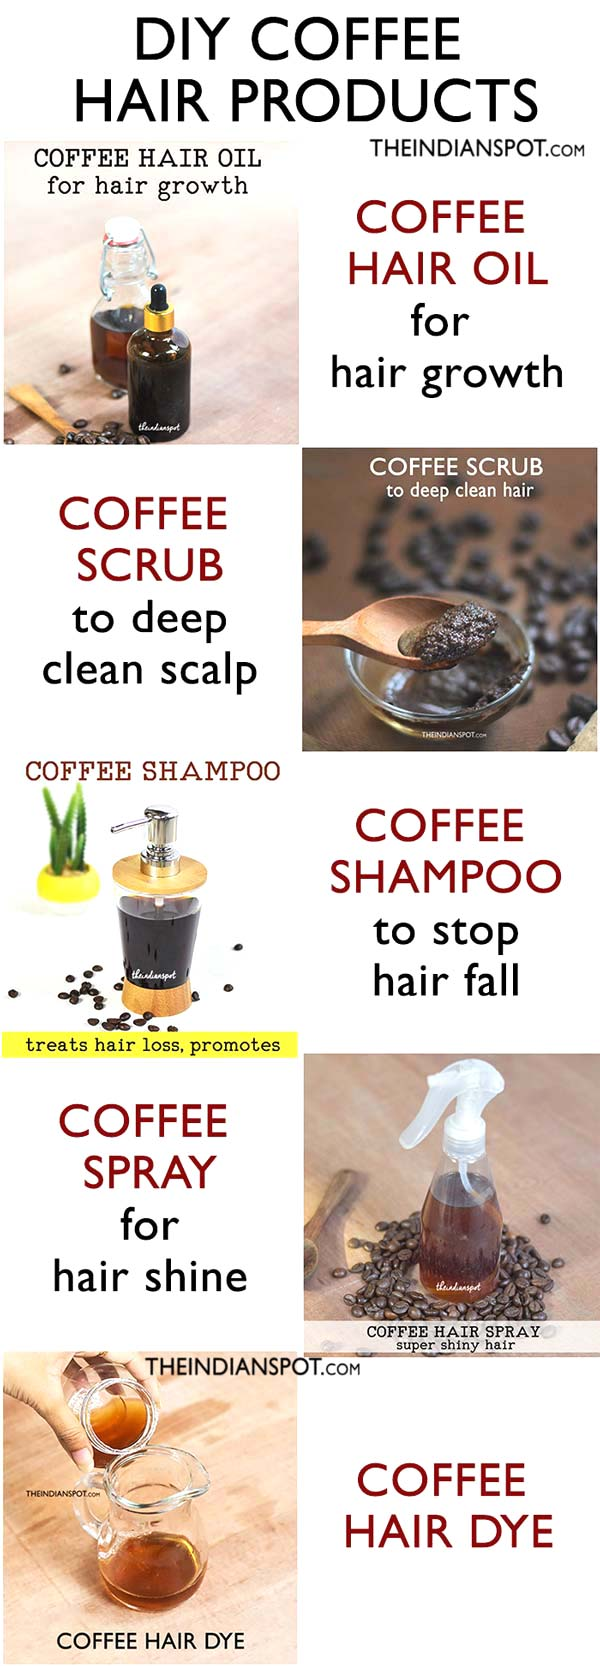 DIY COFFEE HAIR PRODUCTS for hair growth